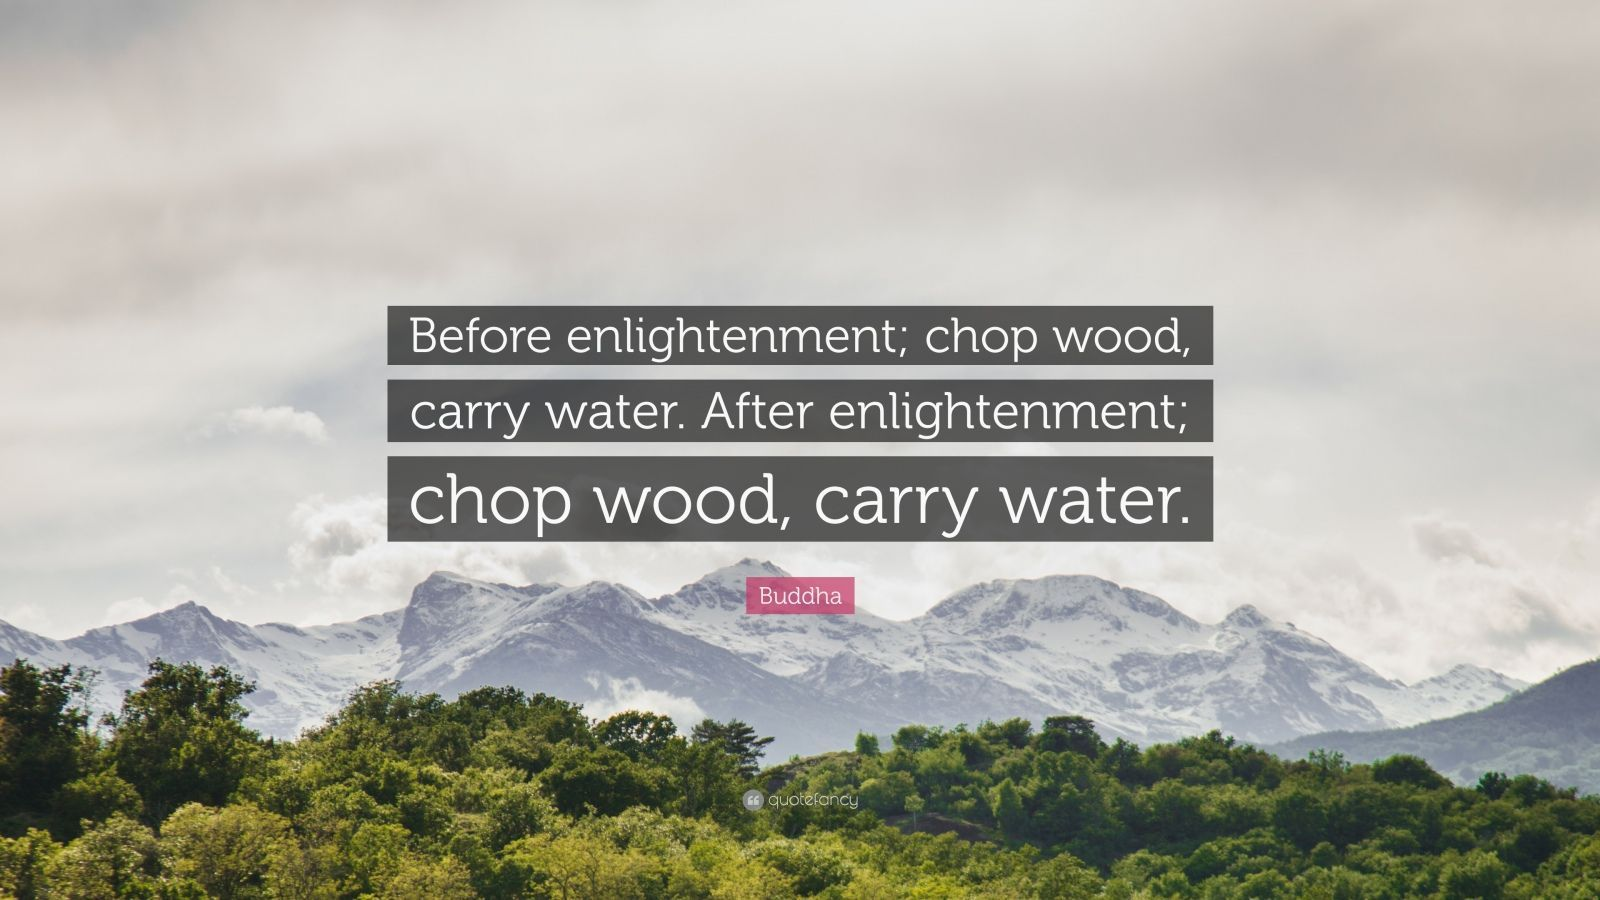 Quotes About Water Before Enlightenment Chop Wood Carry Water After Enlightenment Chop Wood Carr God Loves You Quotes God Loves You Love Yourself Quotes